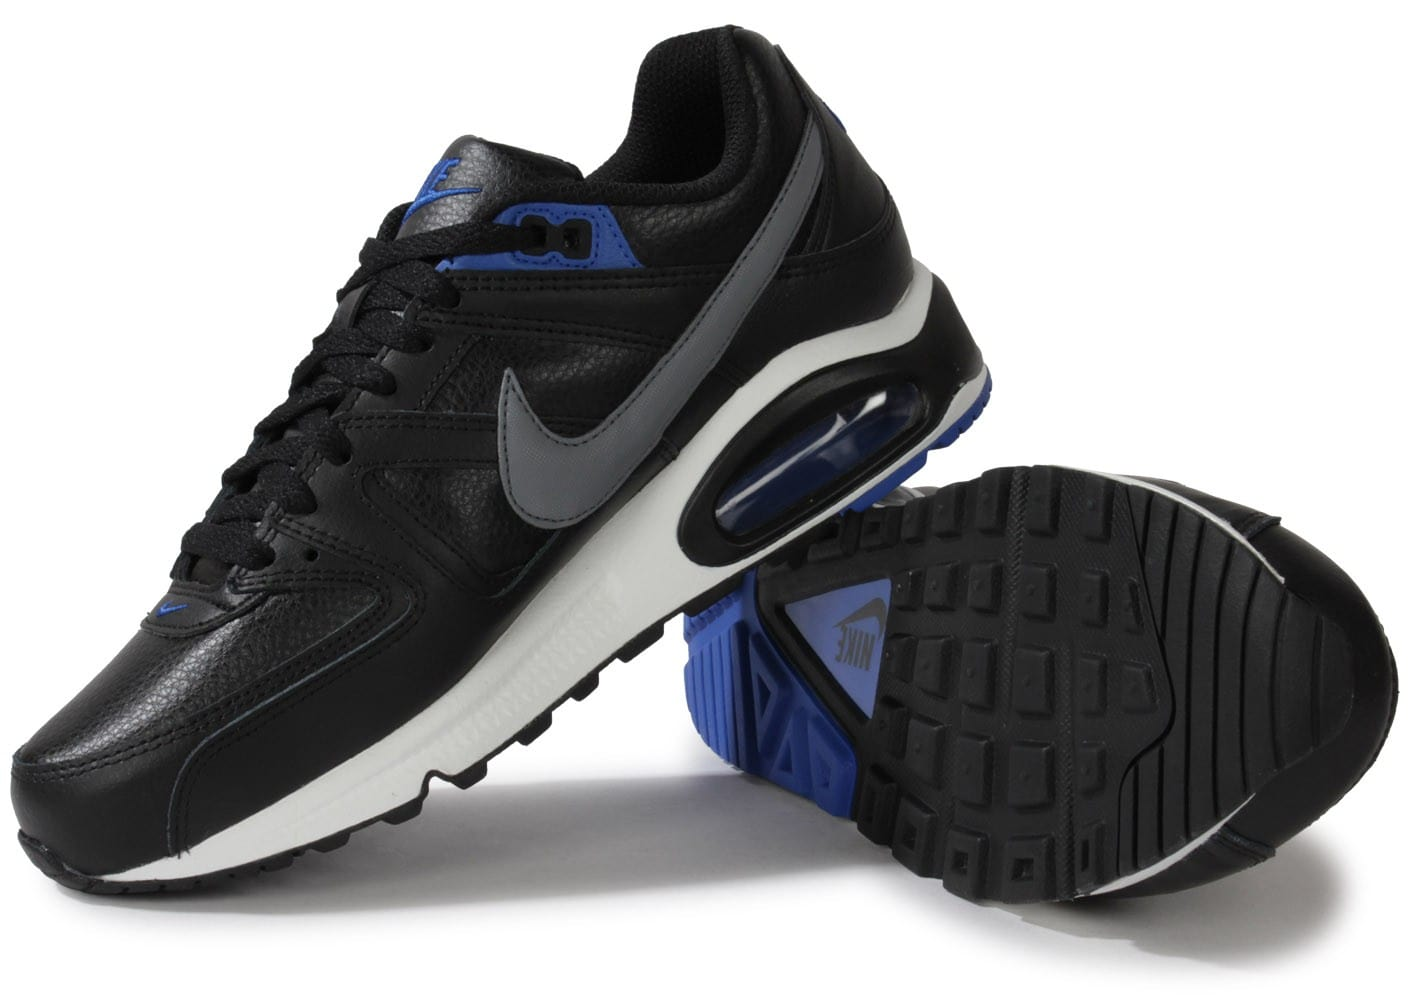 grossiste 09753 182c6 Nike Air Max Command Cuir Noire - Chaussures Baskets homme ...